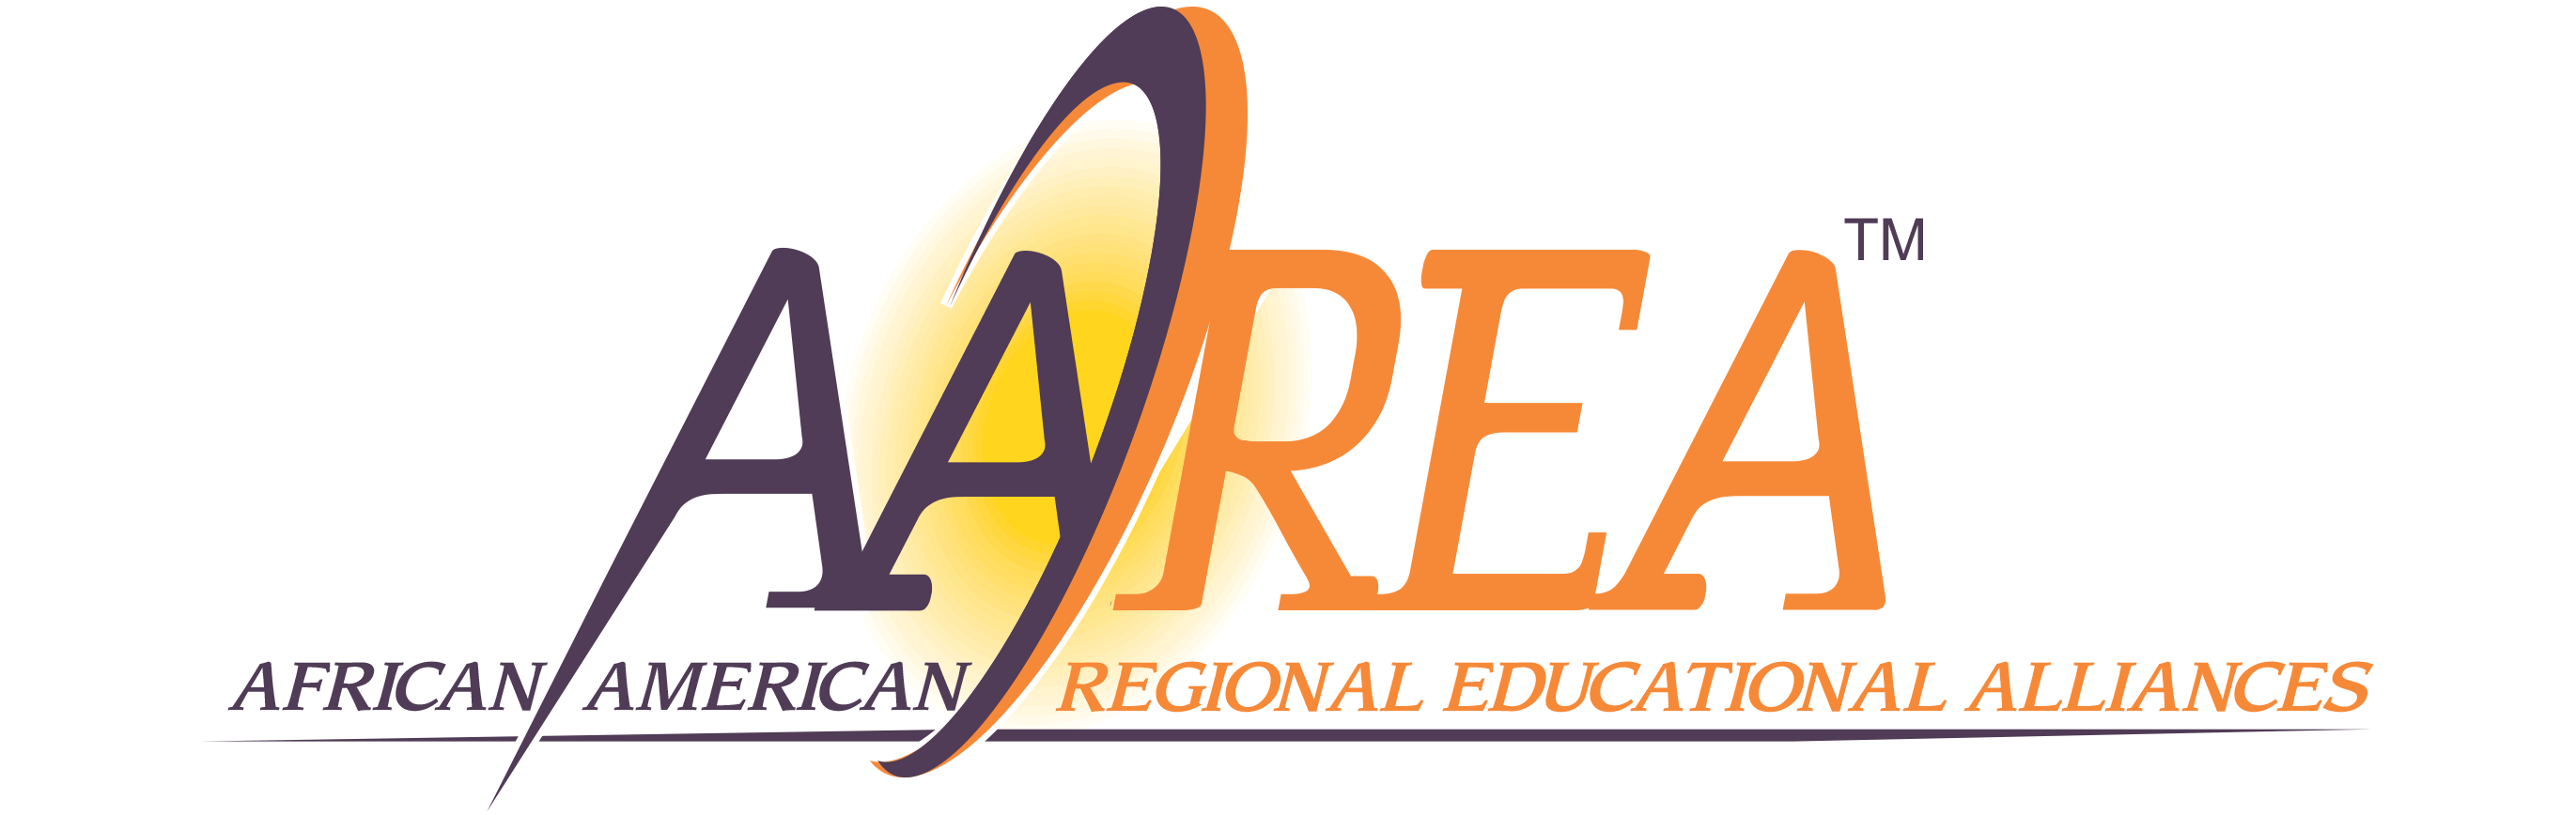 AAREA™ - African American Regional Educational Alliances™